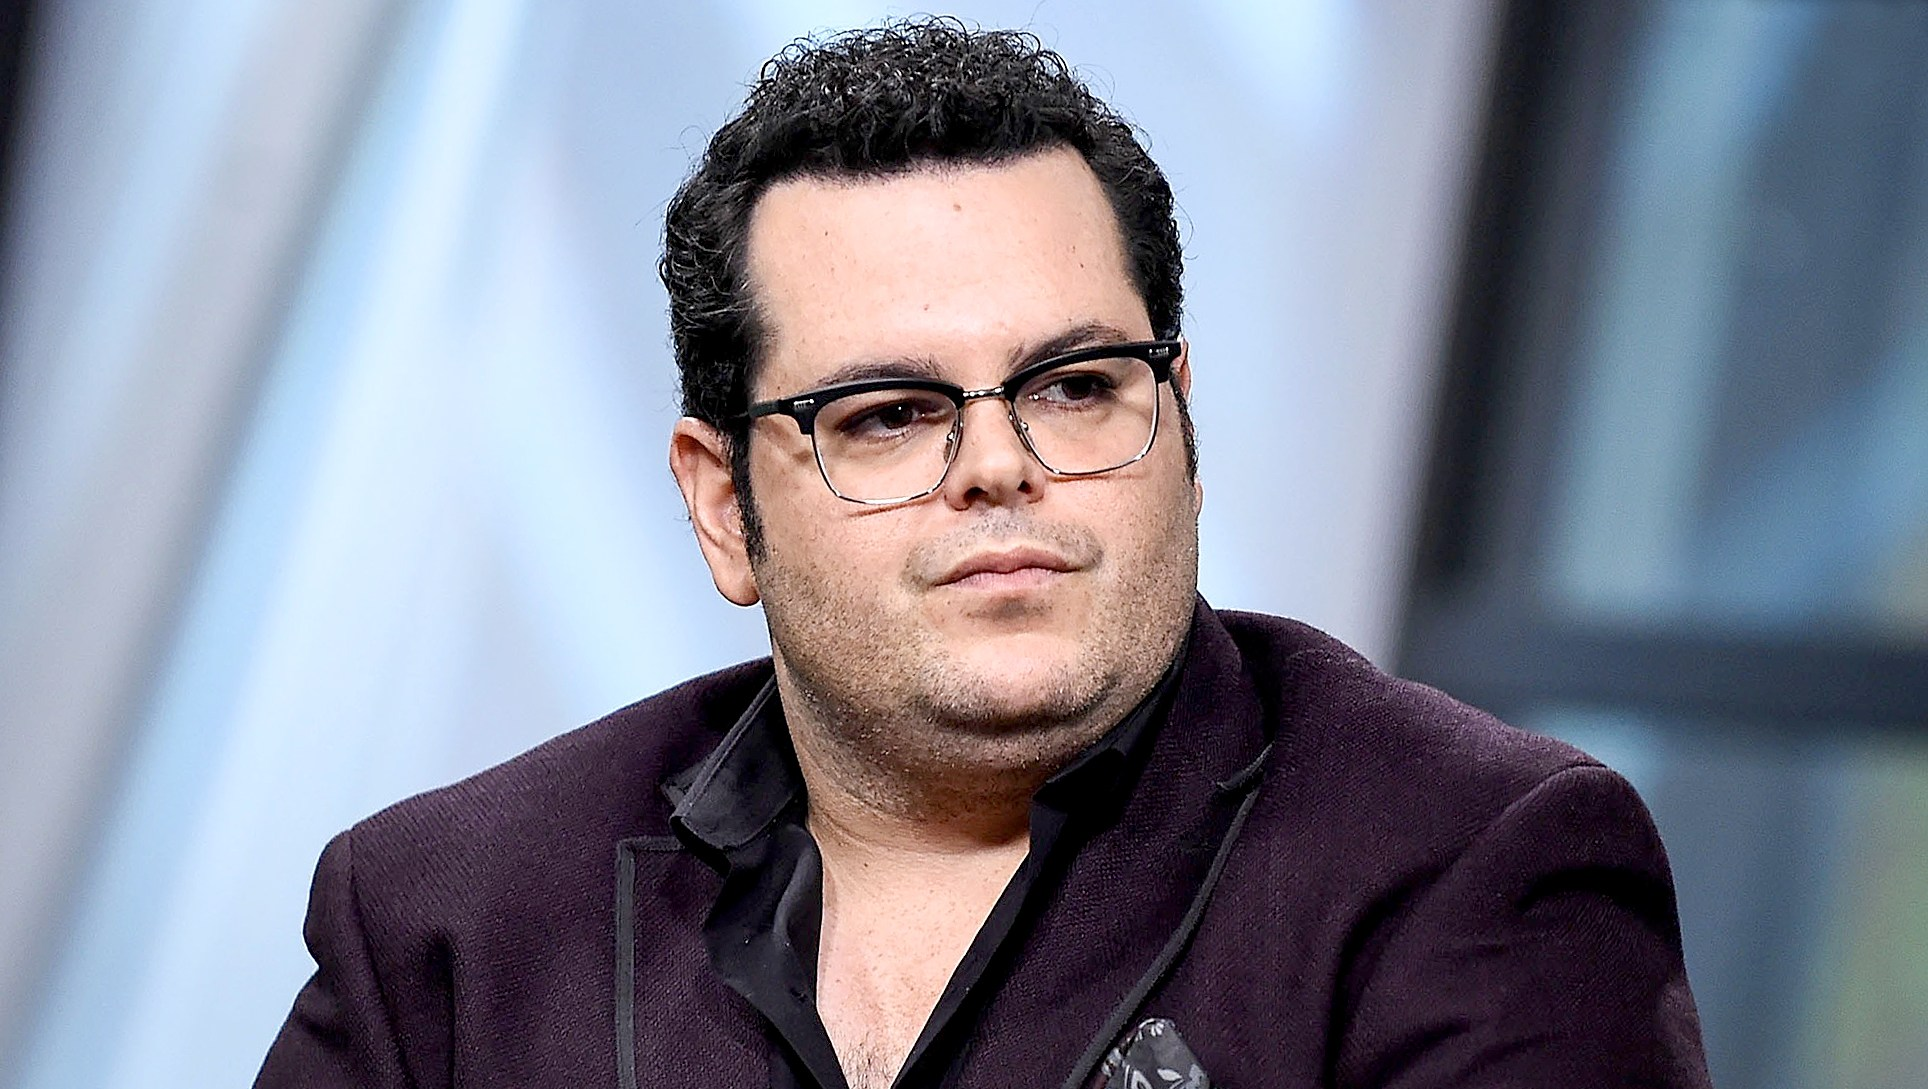 Josh-Gad-Mourns-Friends-Son-Who-Was-Killed-in-Florida-School-Shooting